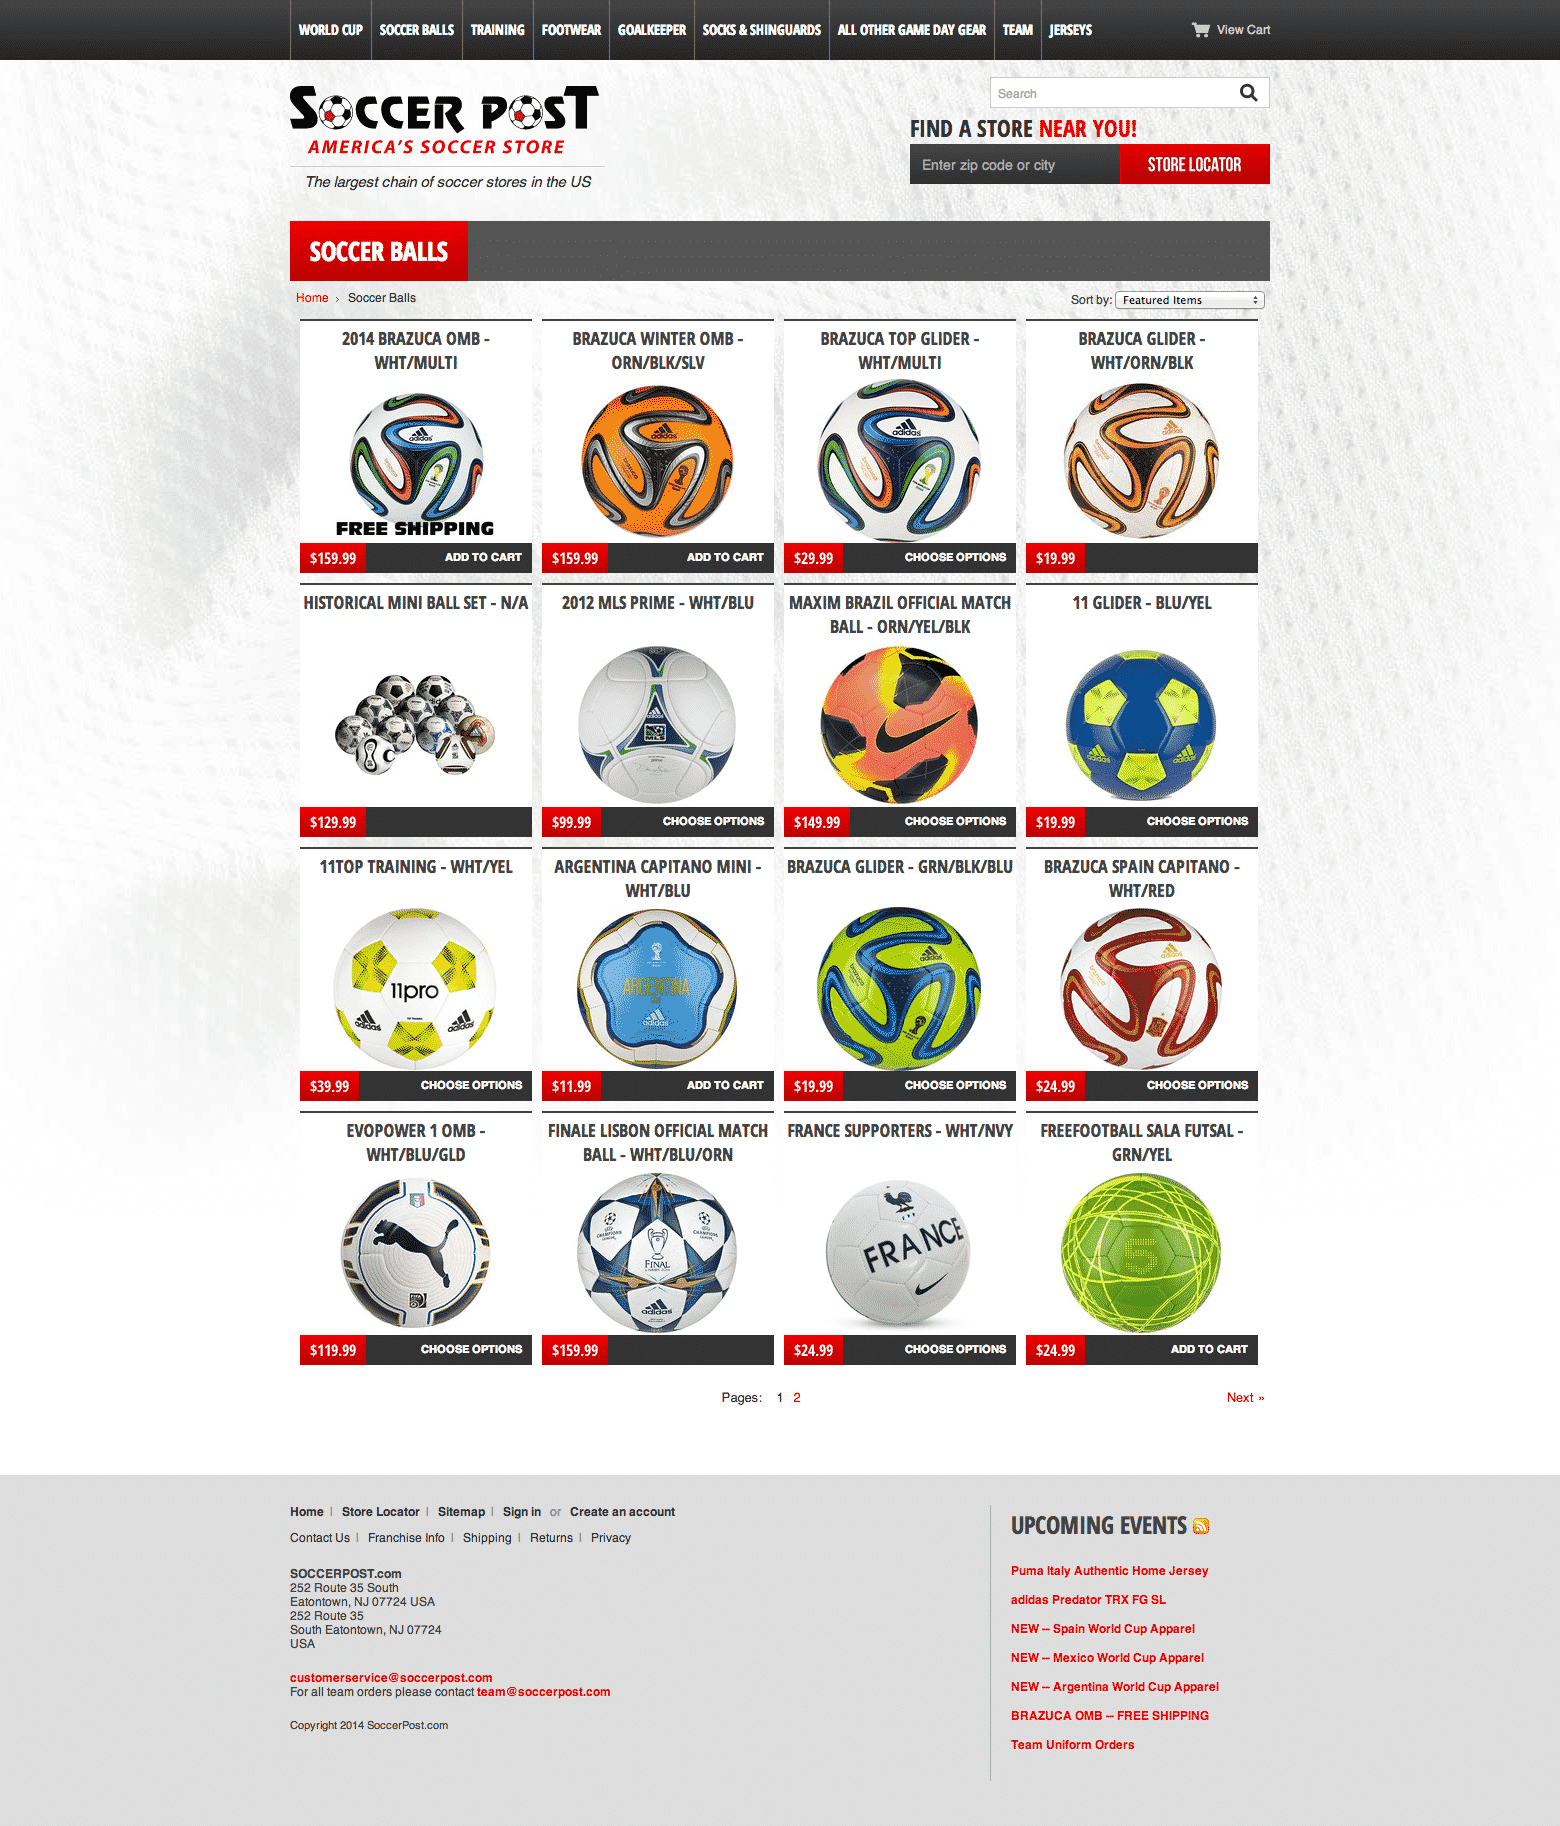 screenshot-www.soccerpost.com 2014-06-09 15-03-49